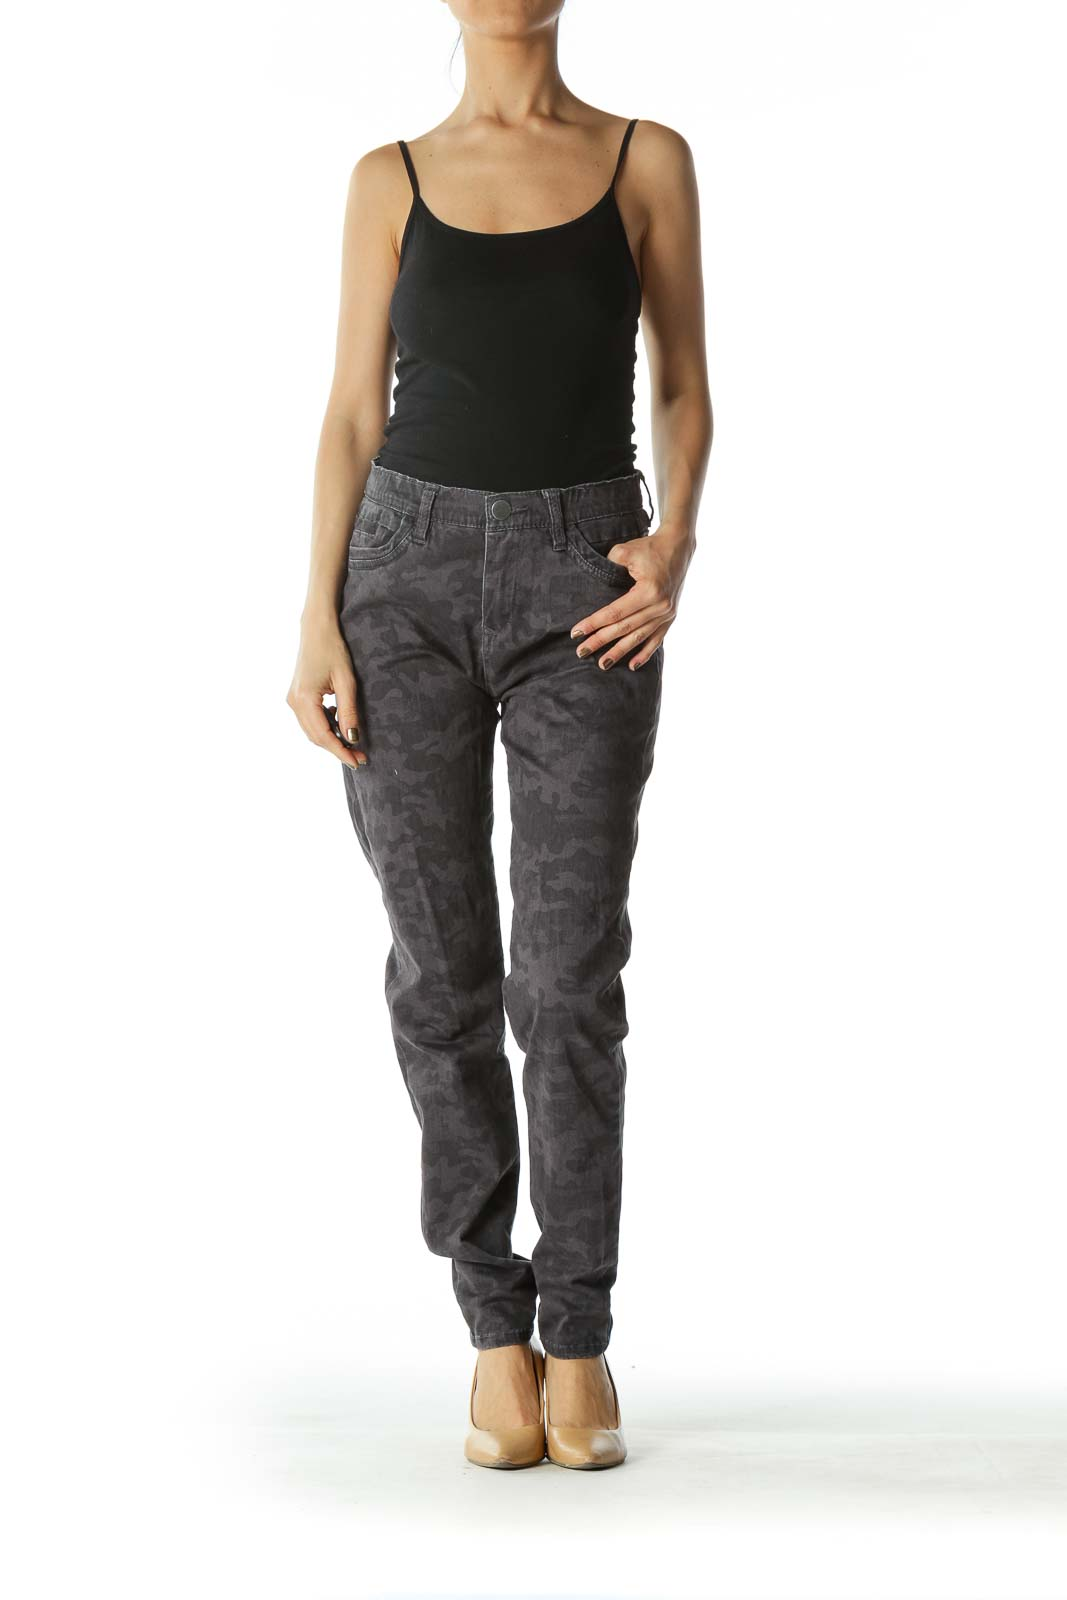 Black and Gray Faded Camouflage Skinny Pants